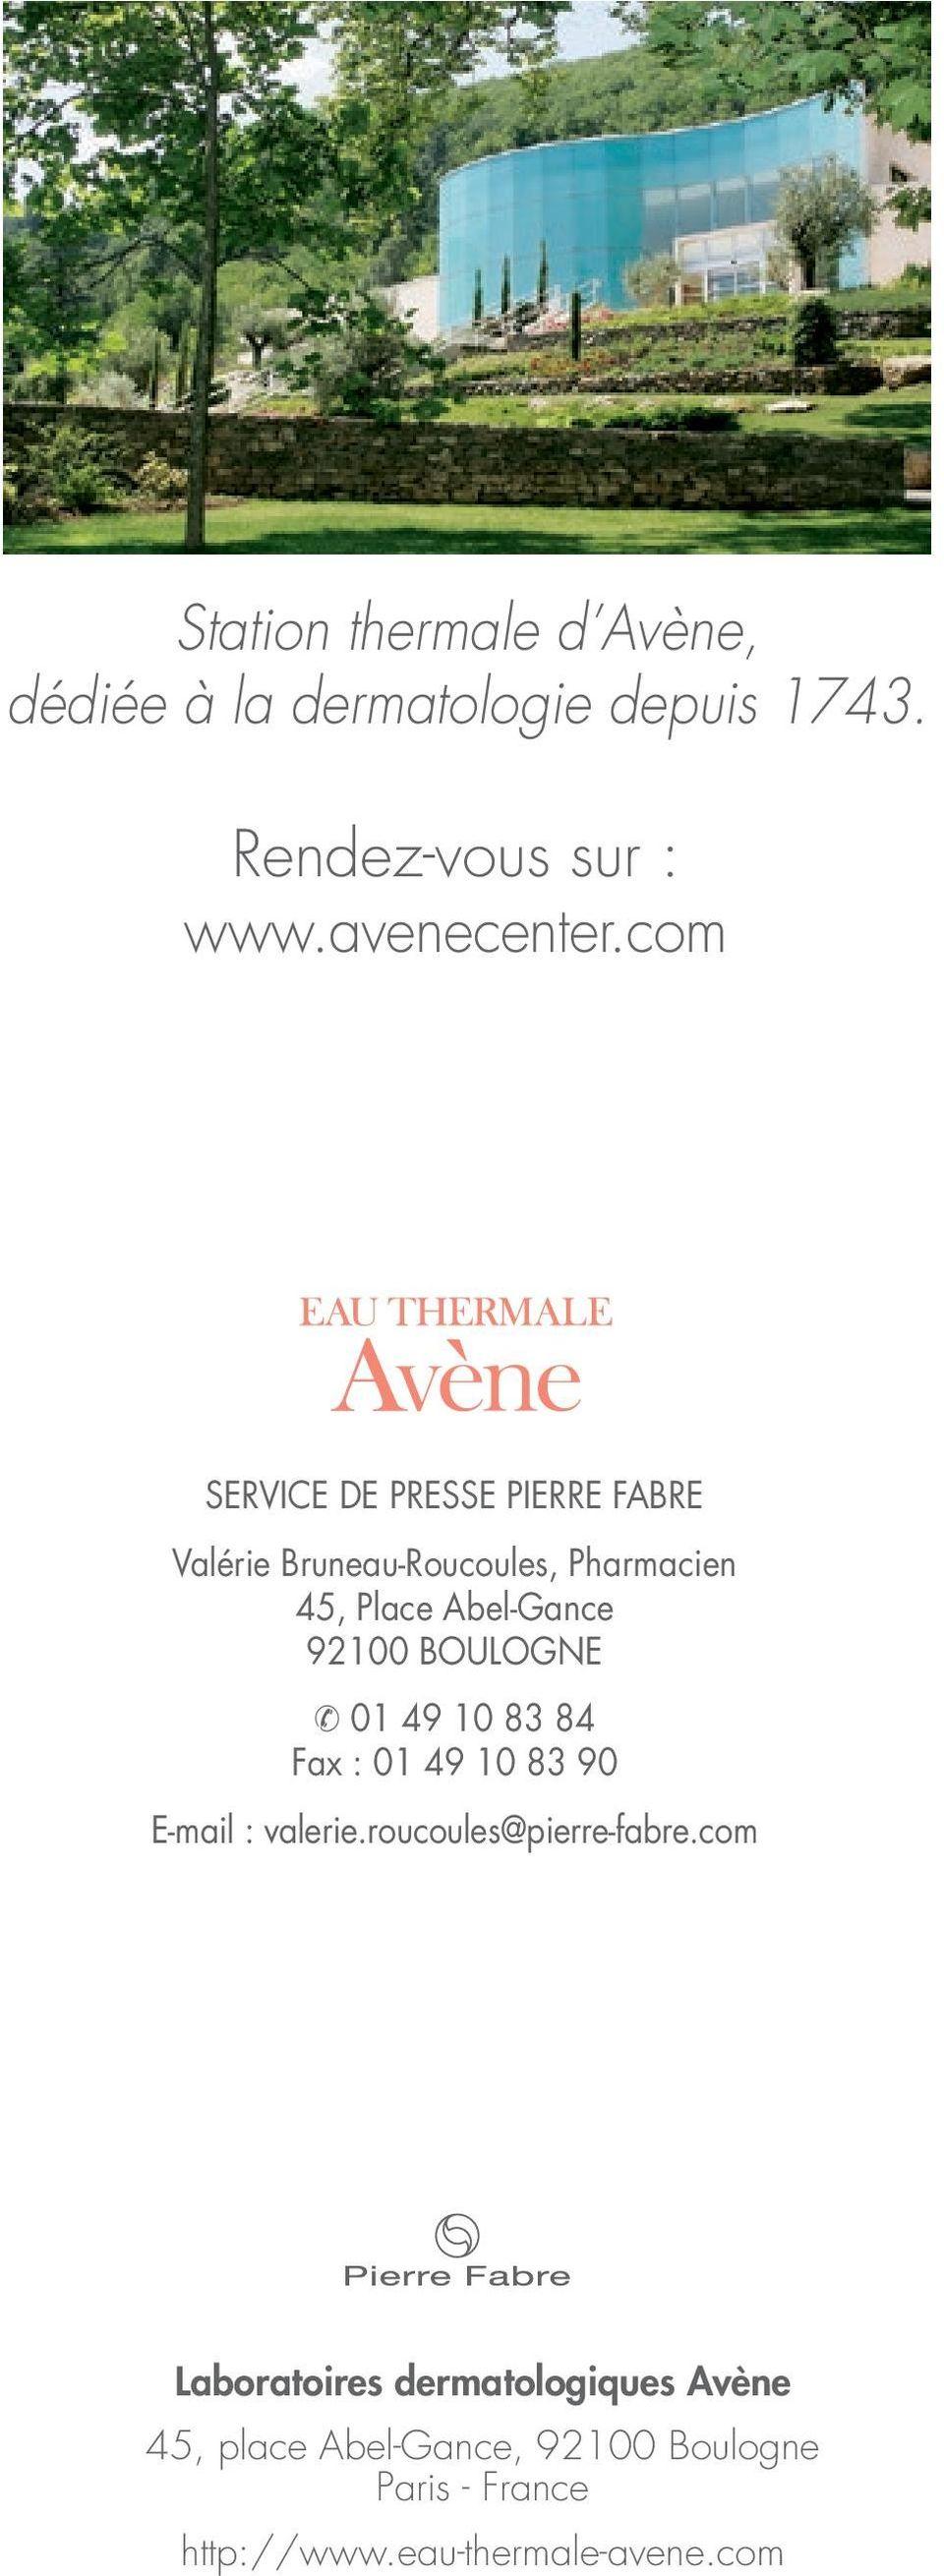 BOULOGNE & 01 49 10 83 84 Fax : 01 49 10 83 90 E-mail : valerie.roucoules@pierre-fabre.